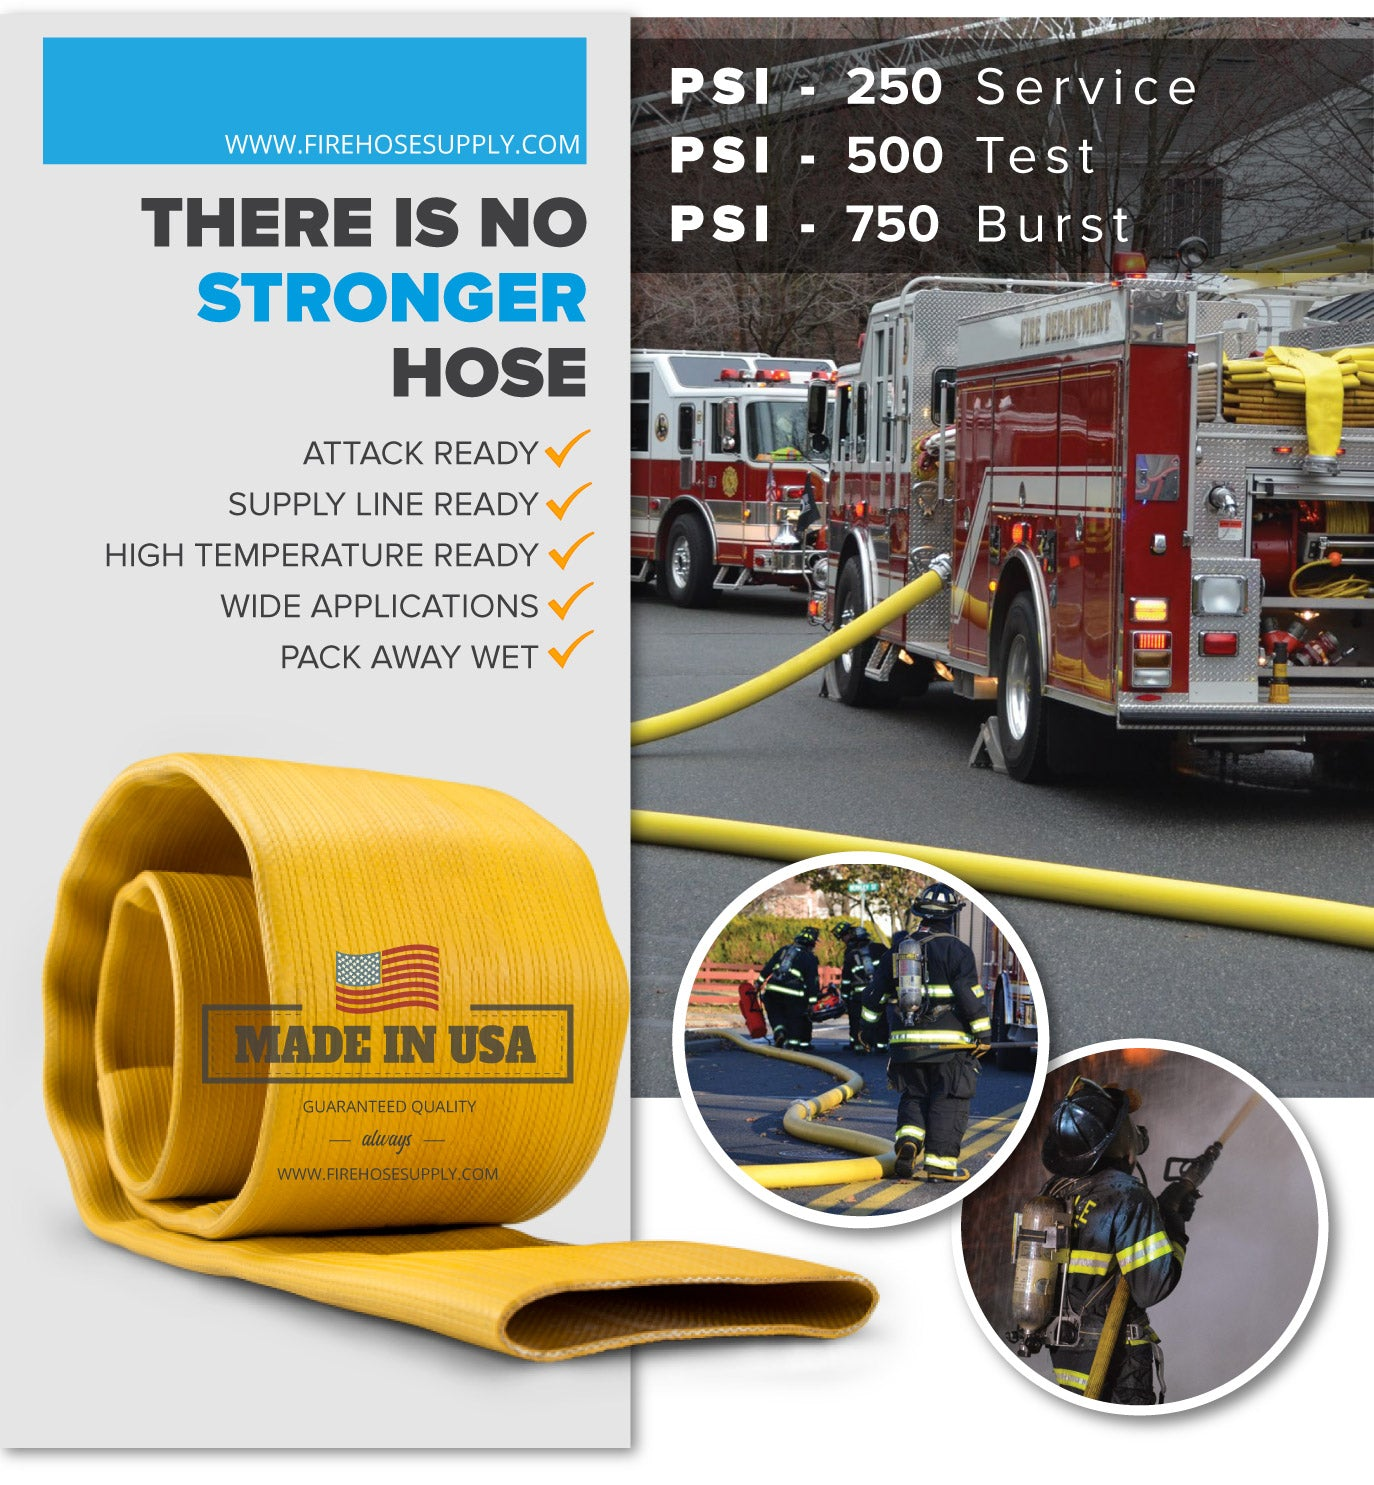 4 Inch Rubber Fire Hose Material Only Supply And Attack Ready Firefighter Yellow 500 PSI Test